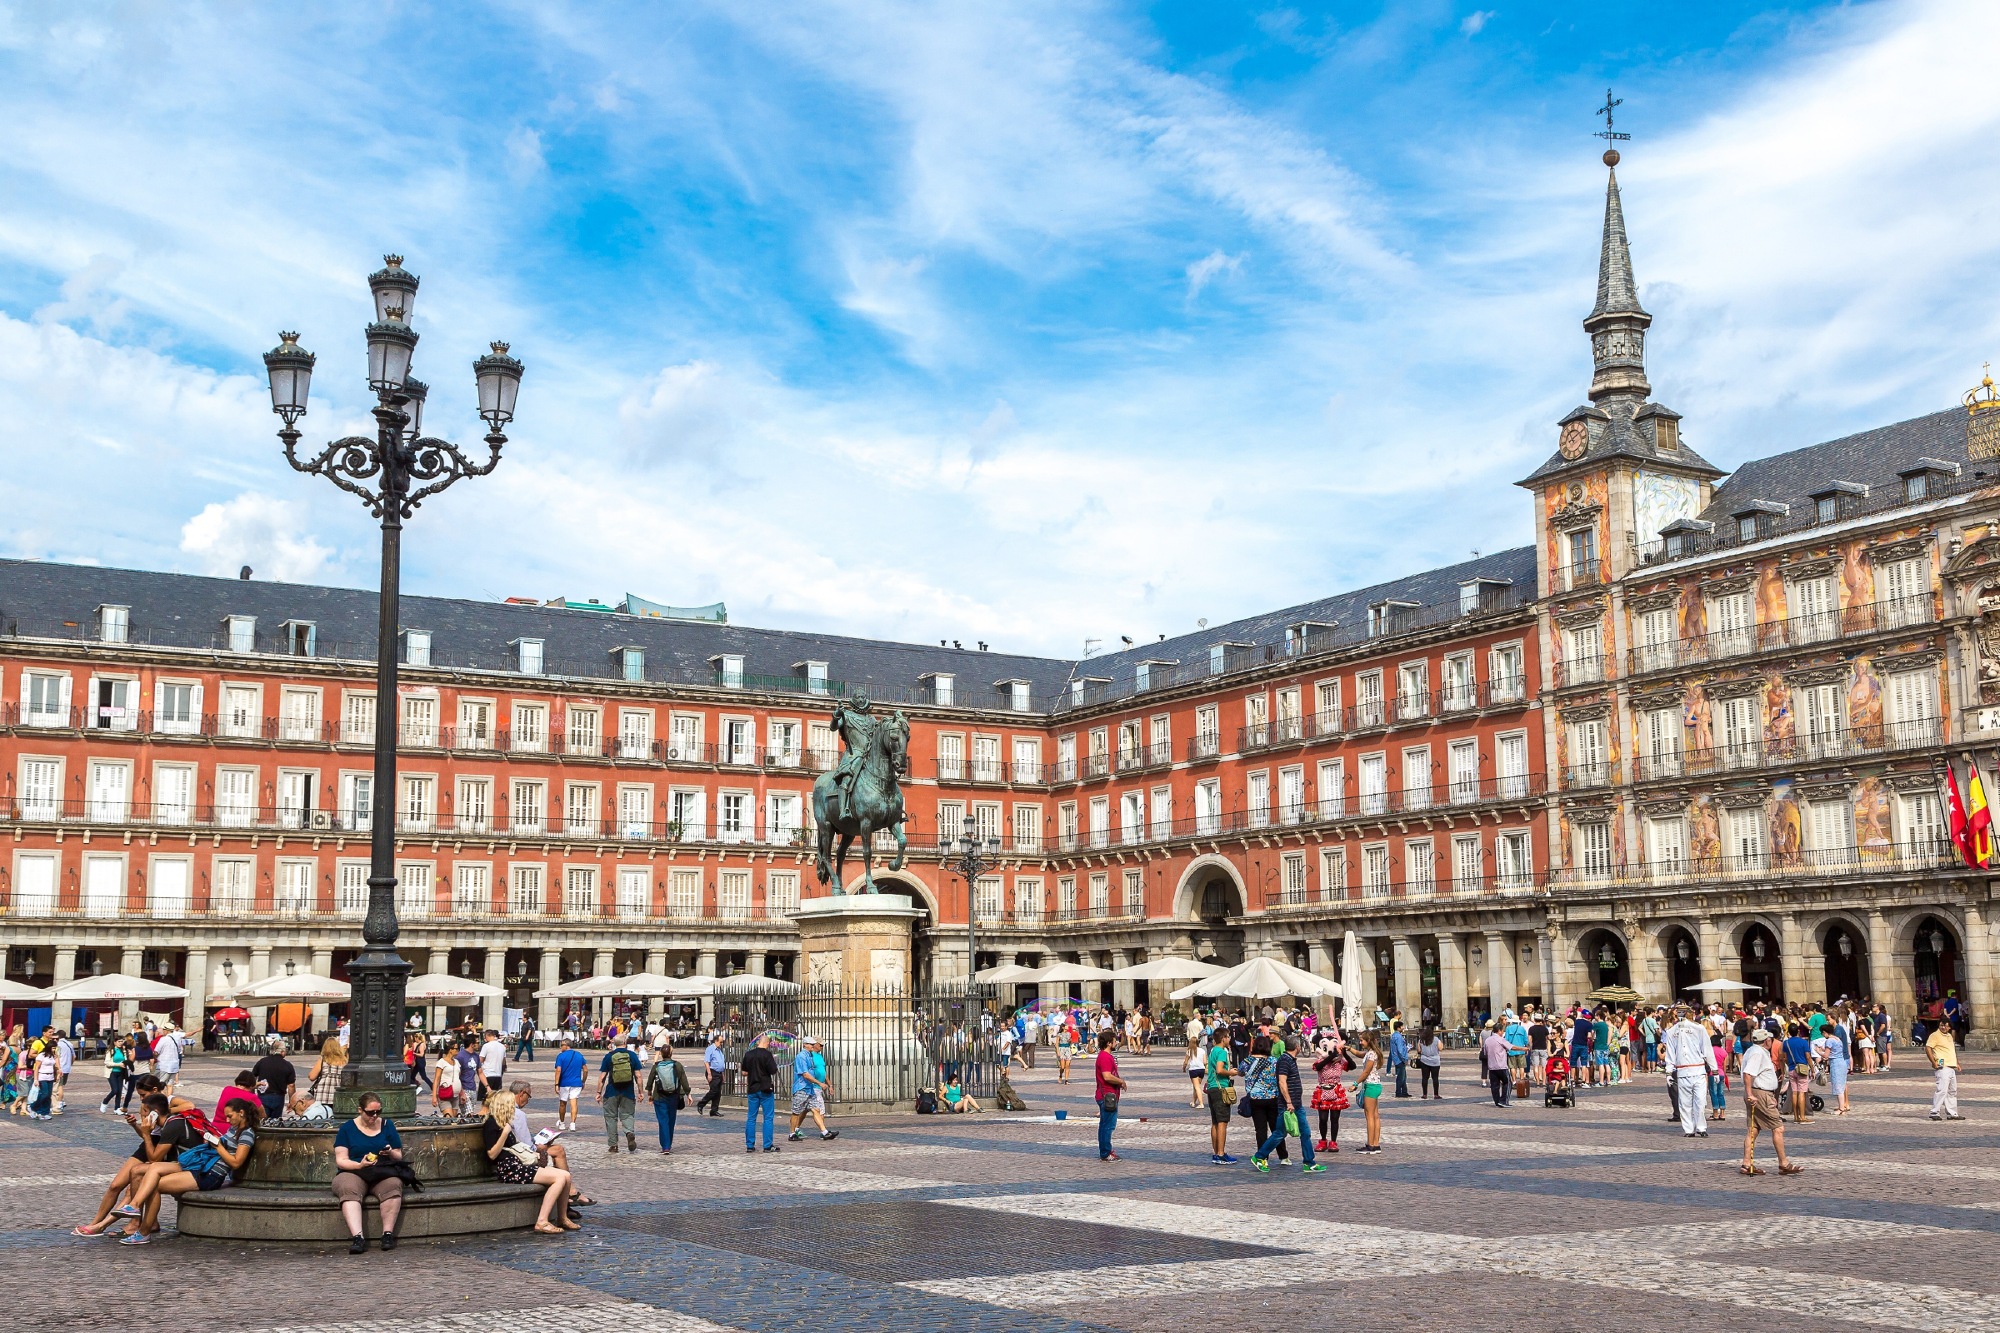 The airline will also operated flights from Los Angeles to madrid next year.